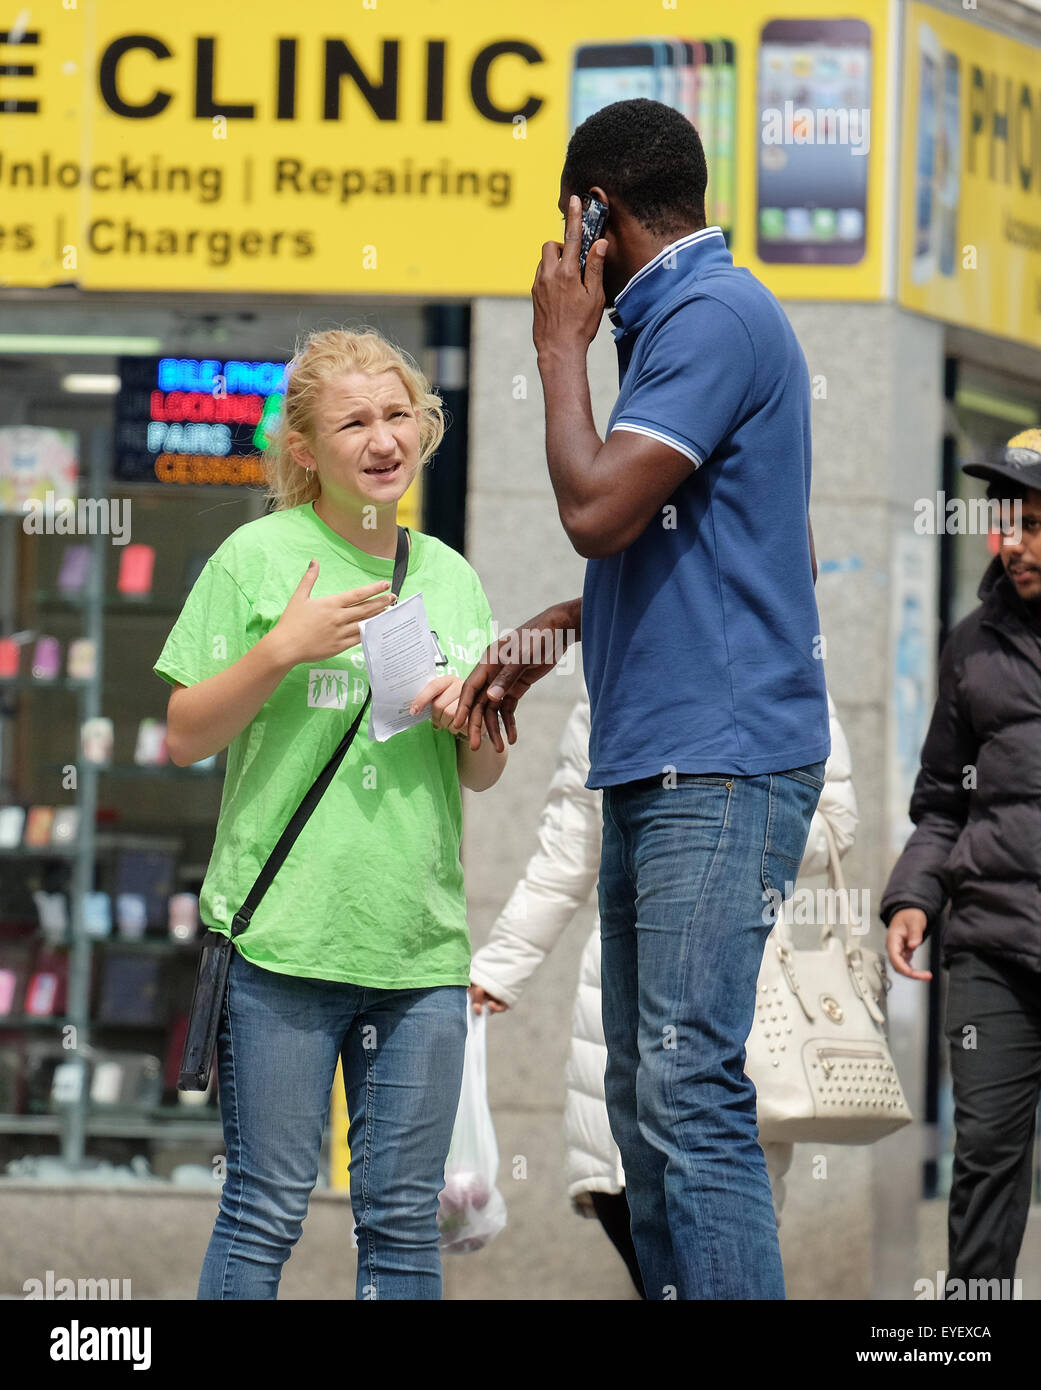 A charity chugger stopping a pedestrian on the street in Southampton - Stock Image